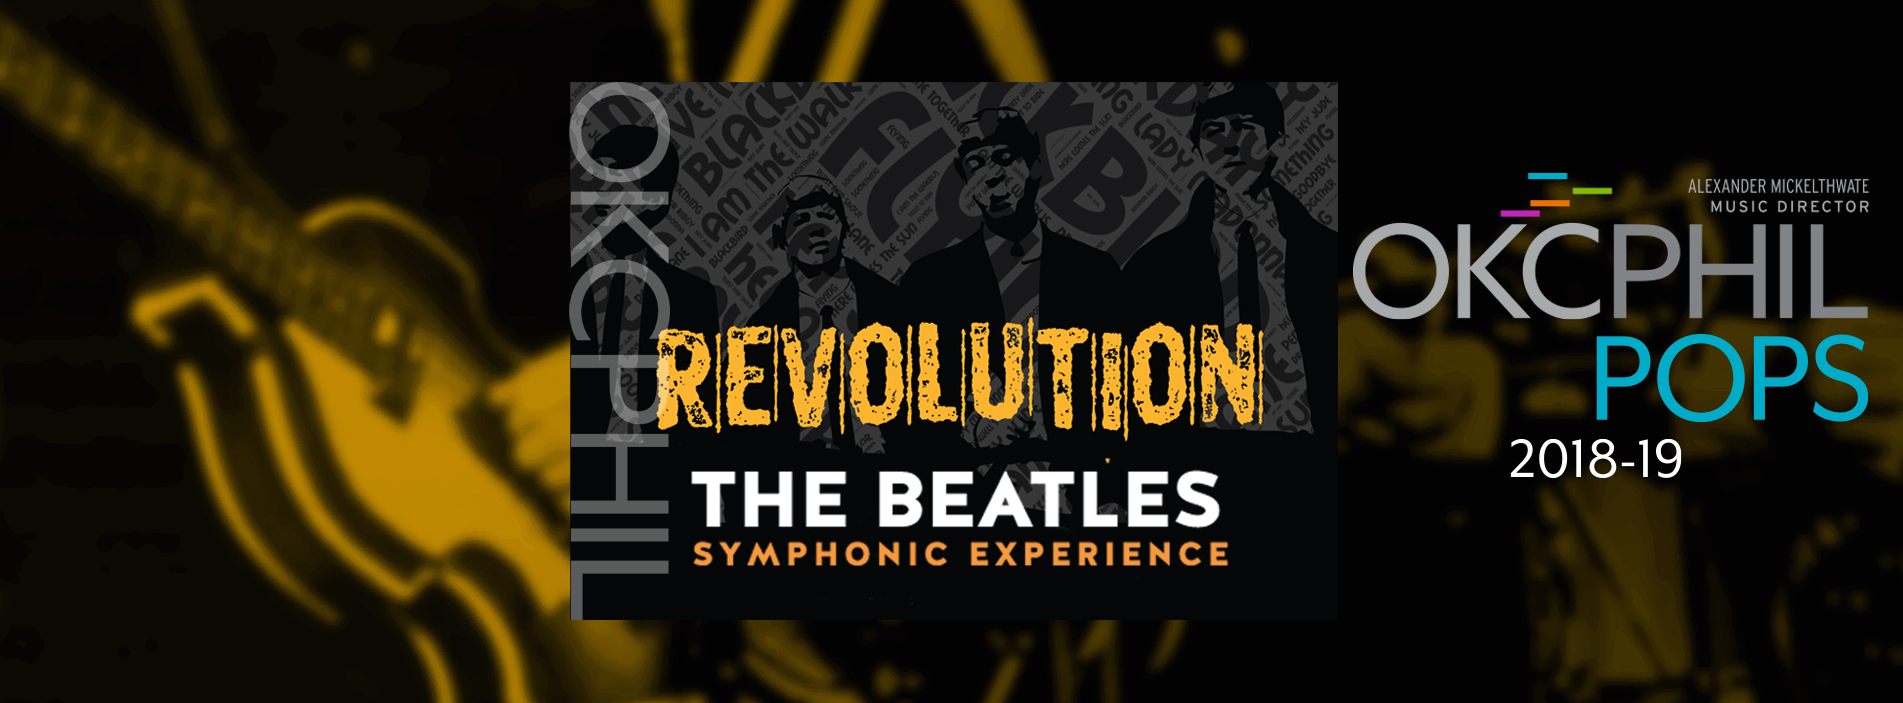 Pops 3 | Revolution: The Beatles Symphonic Experience